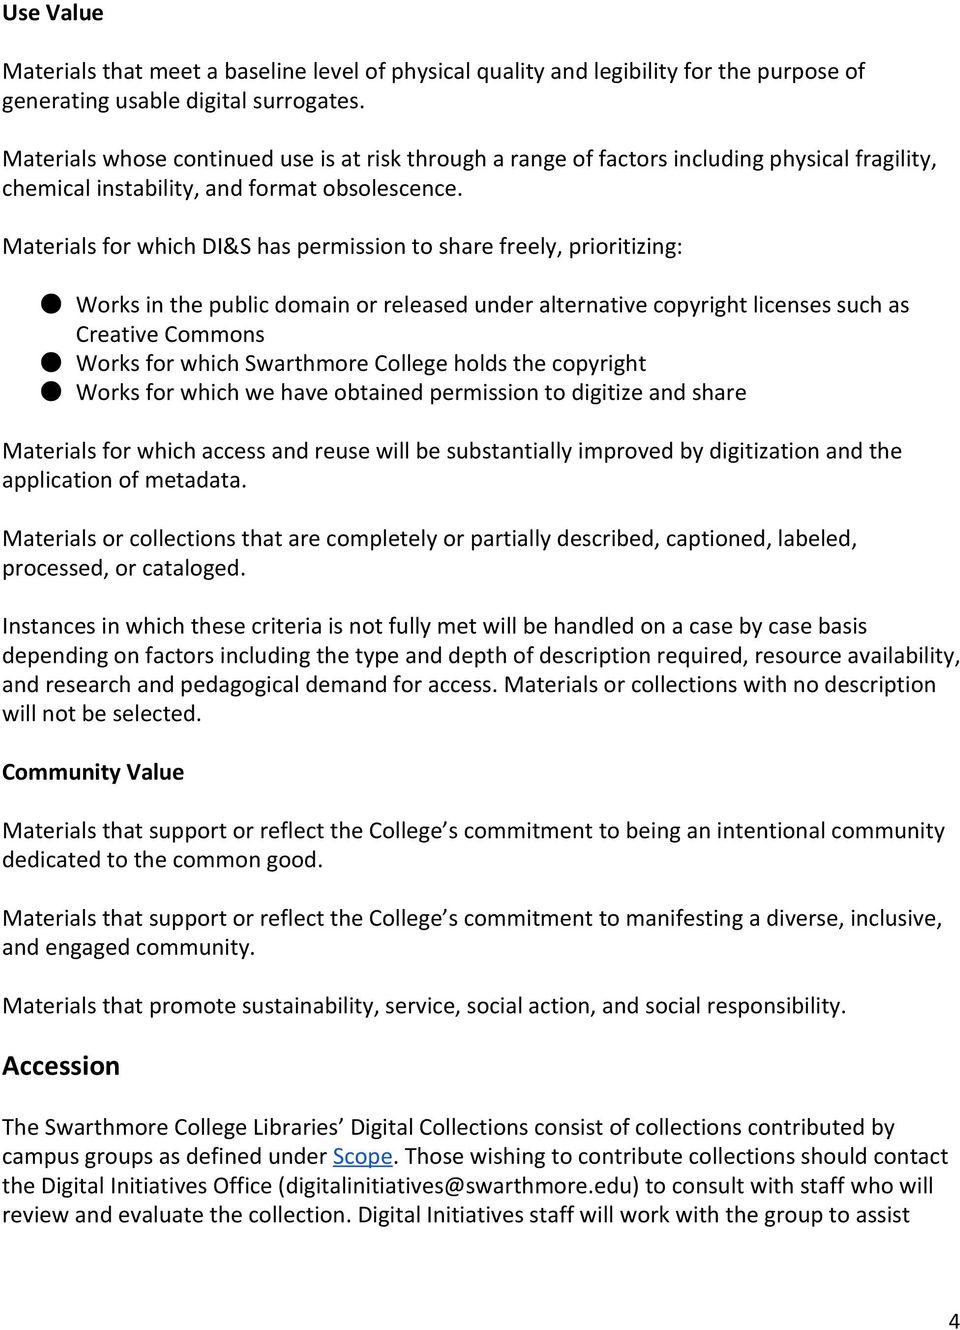 Materials for which DI&S has permission to share freely, prioritizing: Works in the public domain or released under alternative copyright licenses such as Creative Commons Works for which Swarthmore